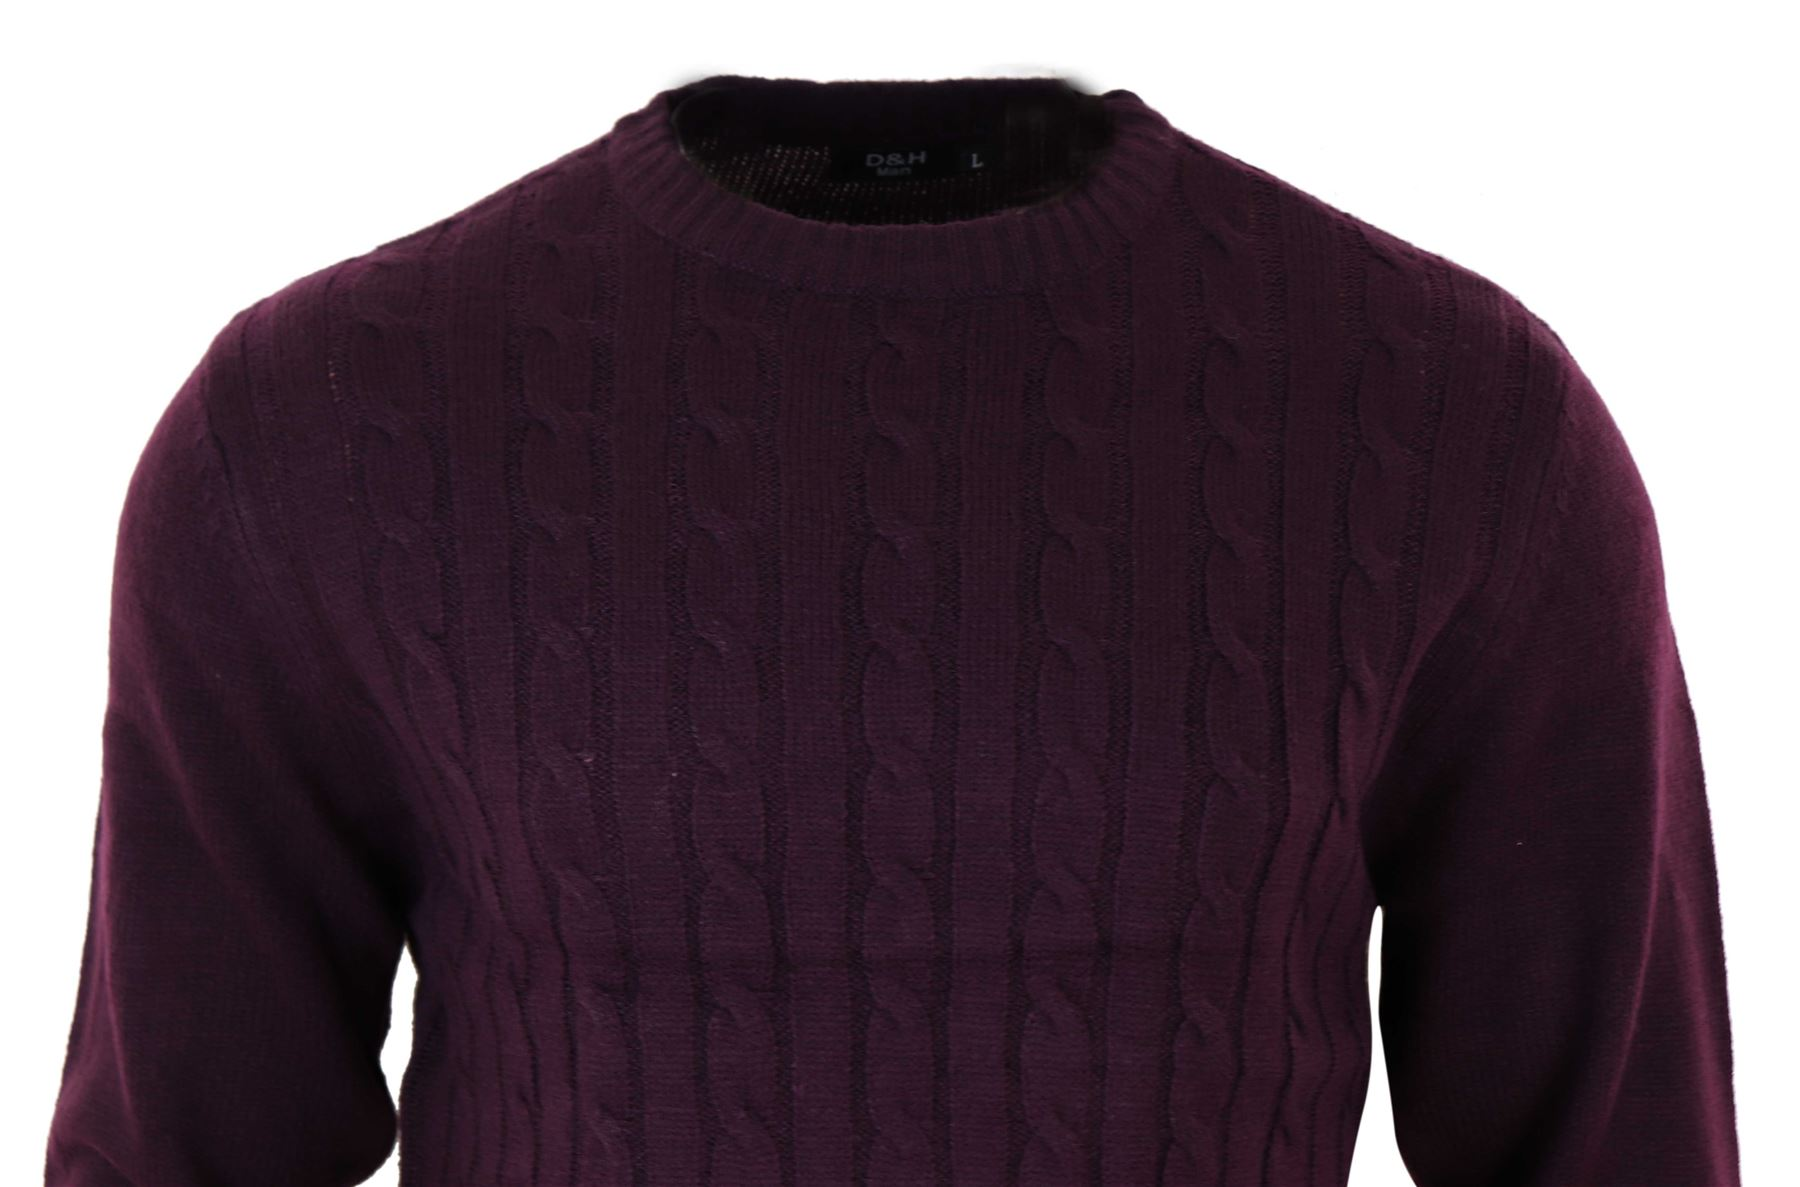 Mens Knitted Wool Feel Smart Casual Tailored Fit Jumper Top